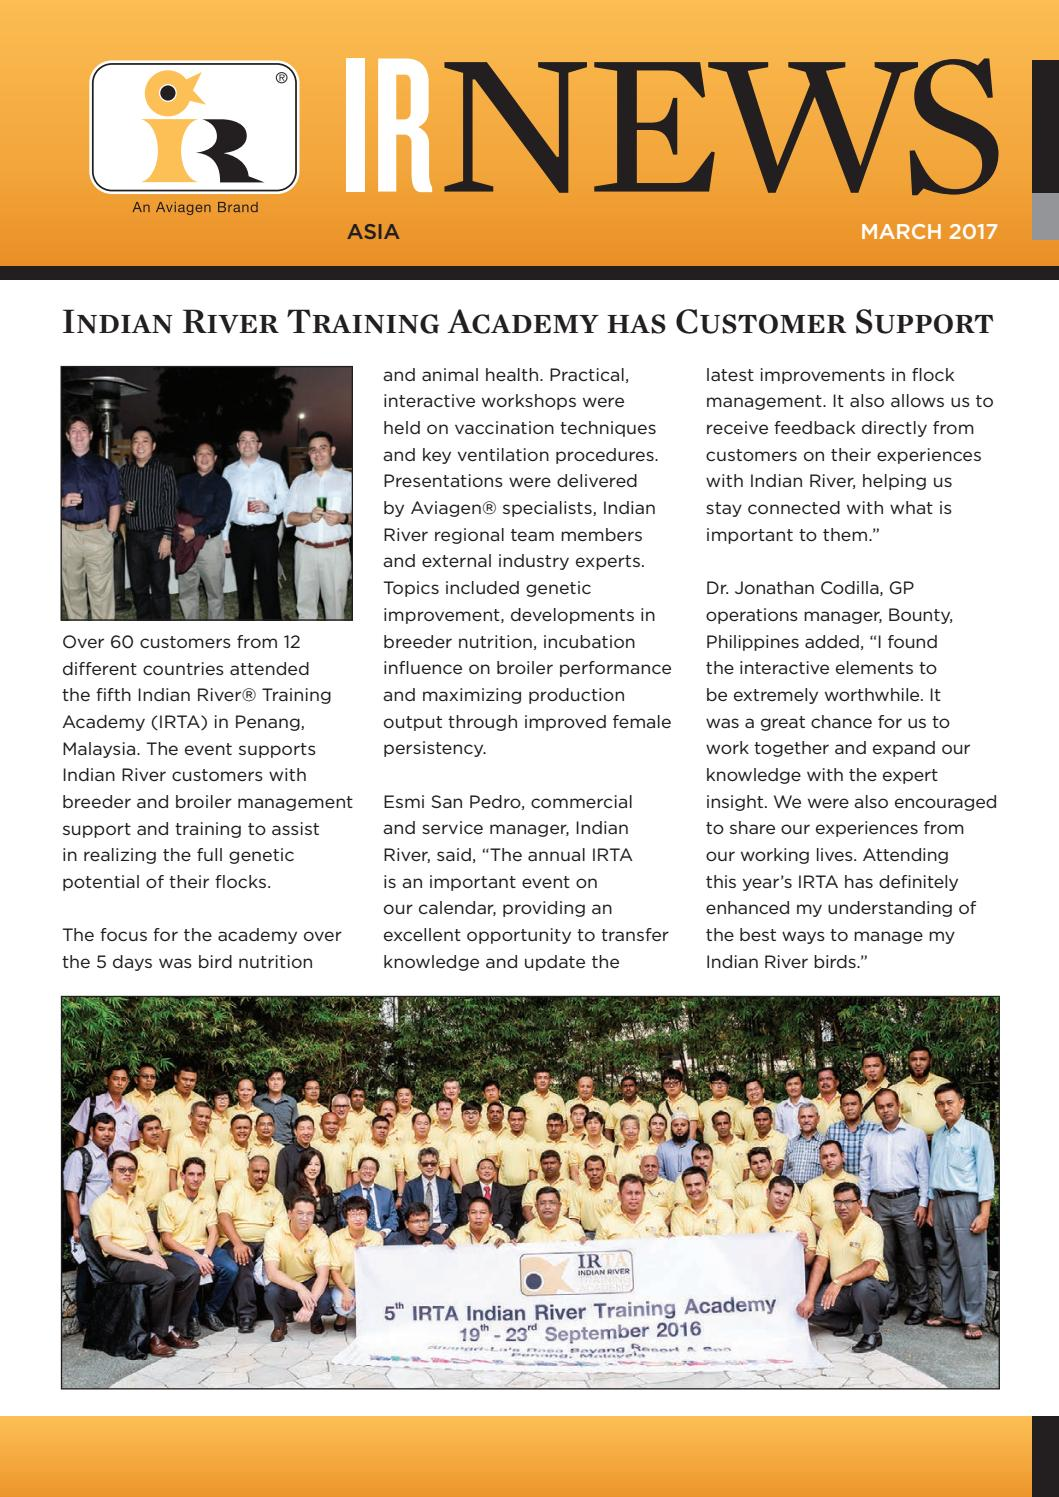 Indian River News - March 2017 by Aviagen - issuu